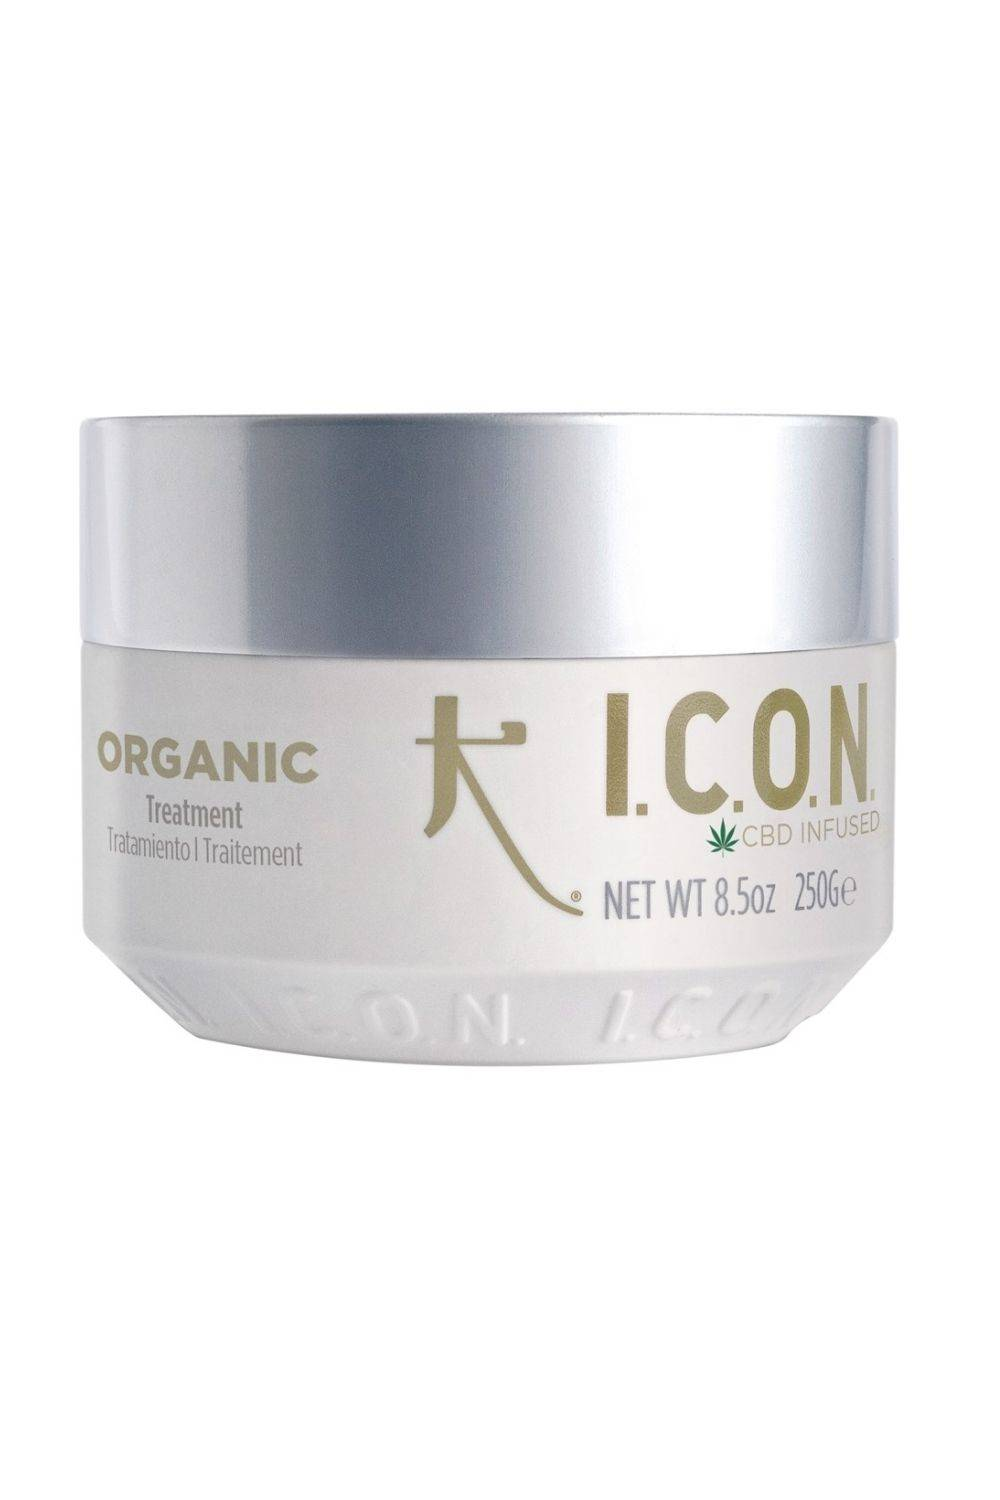 Organic Treatment de ICON